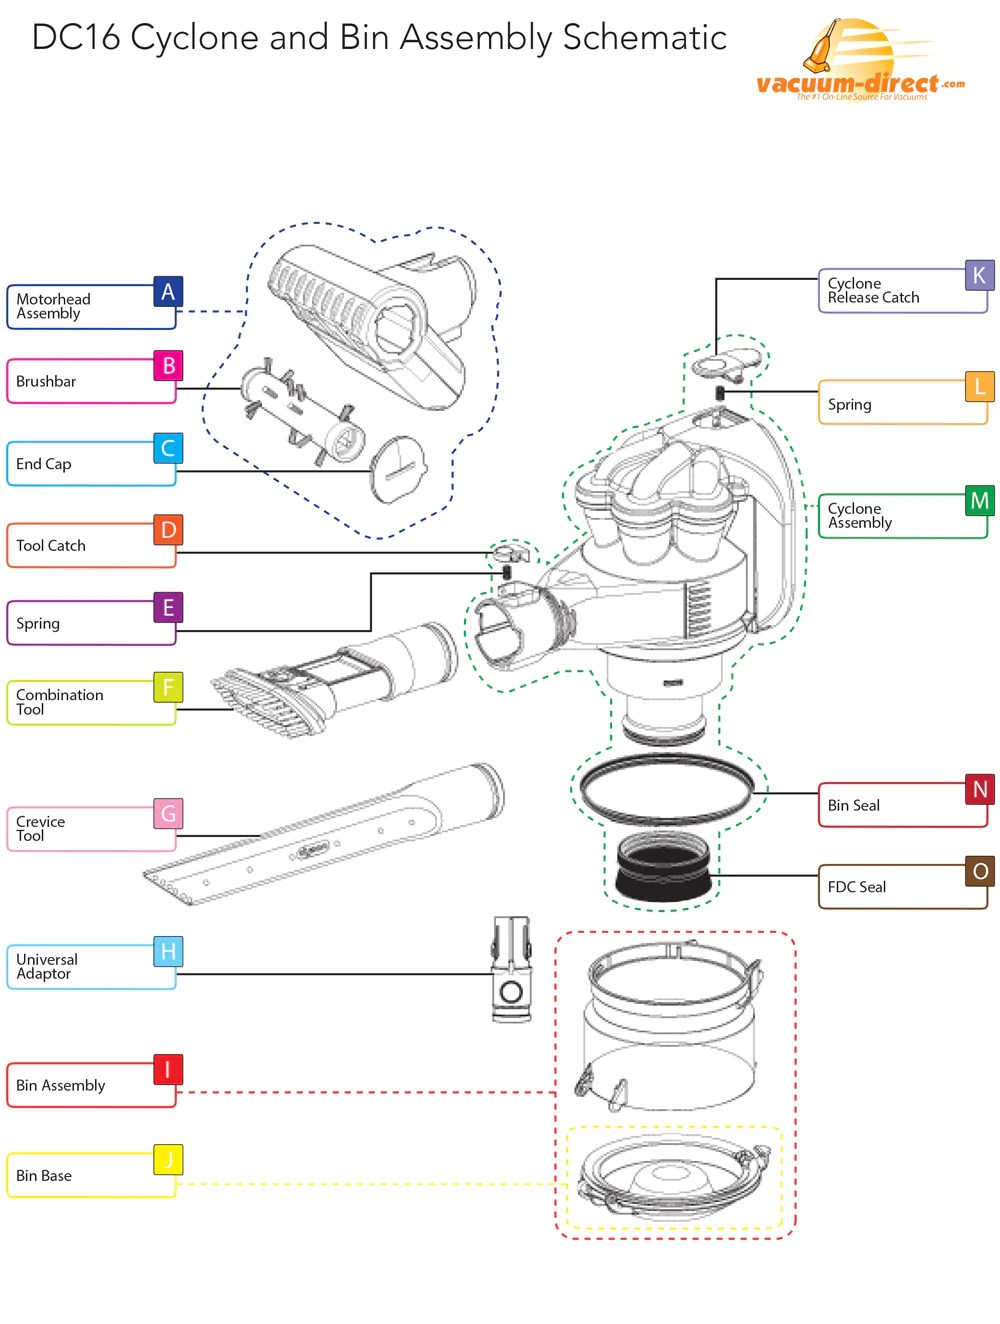 hight resolution of click here to view larger image dyson dc16 cyclone bin parts diagram